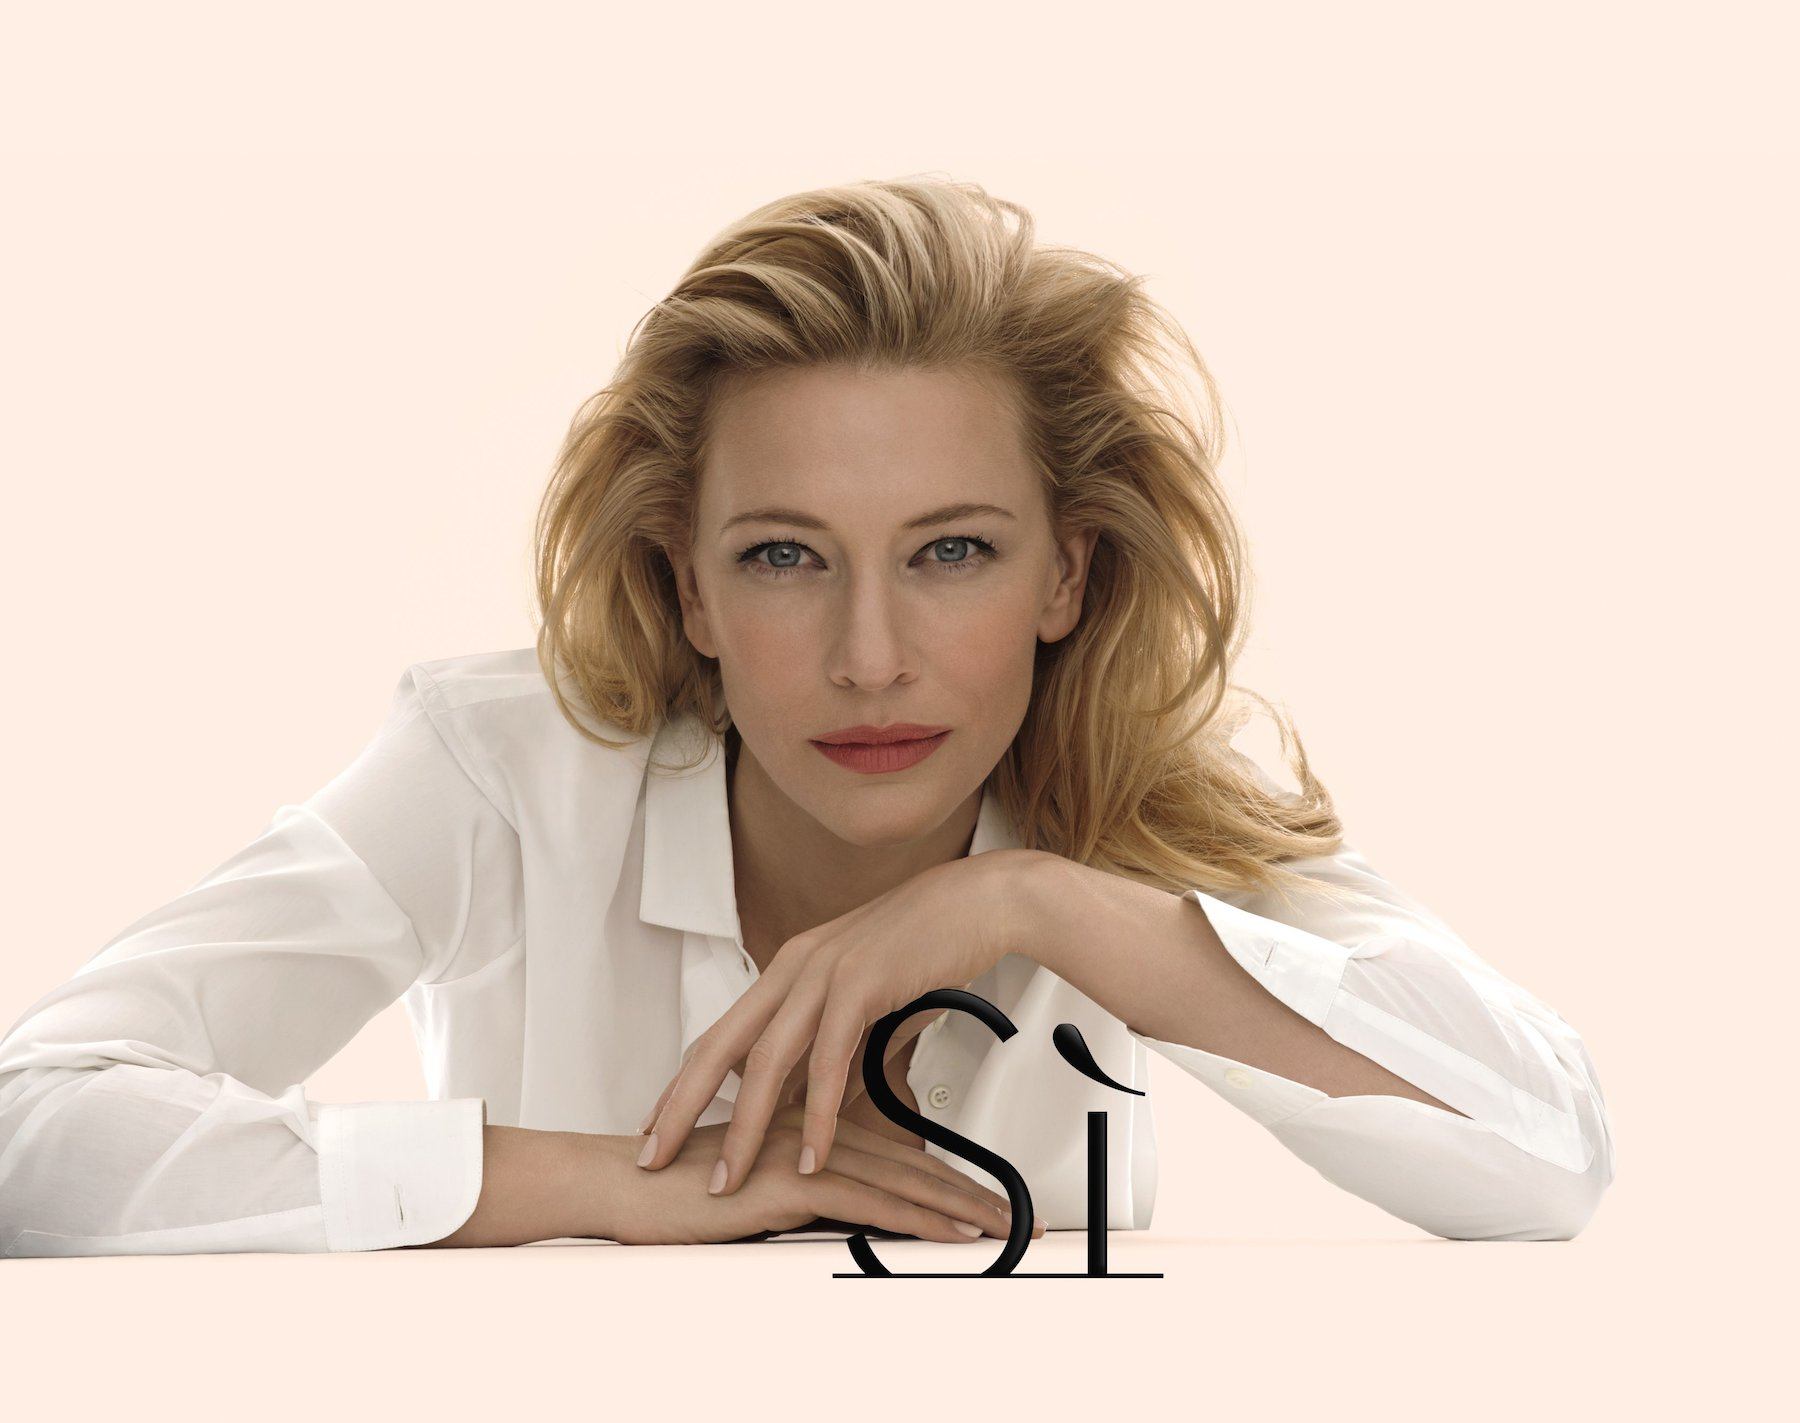 Cate Blanchett HD Wallpapers for desktop download Cate Blanchett Movies